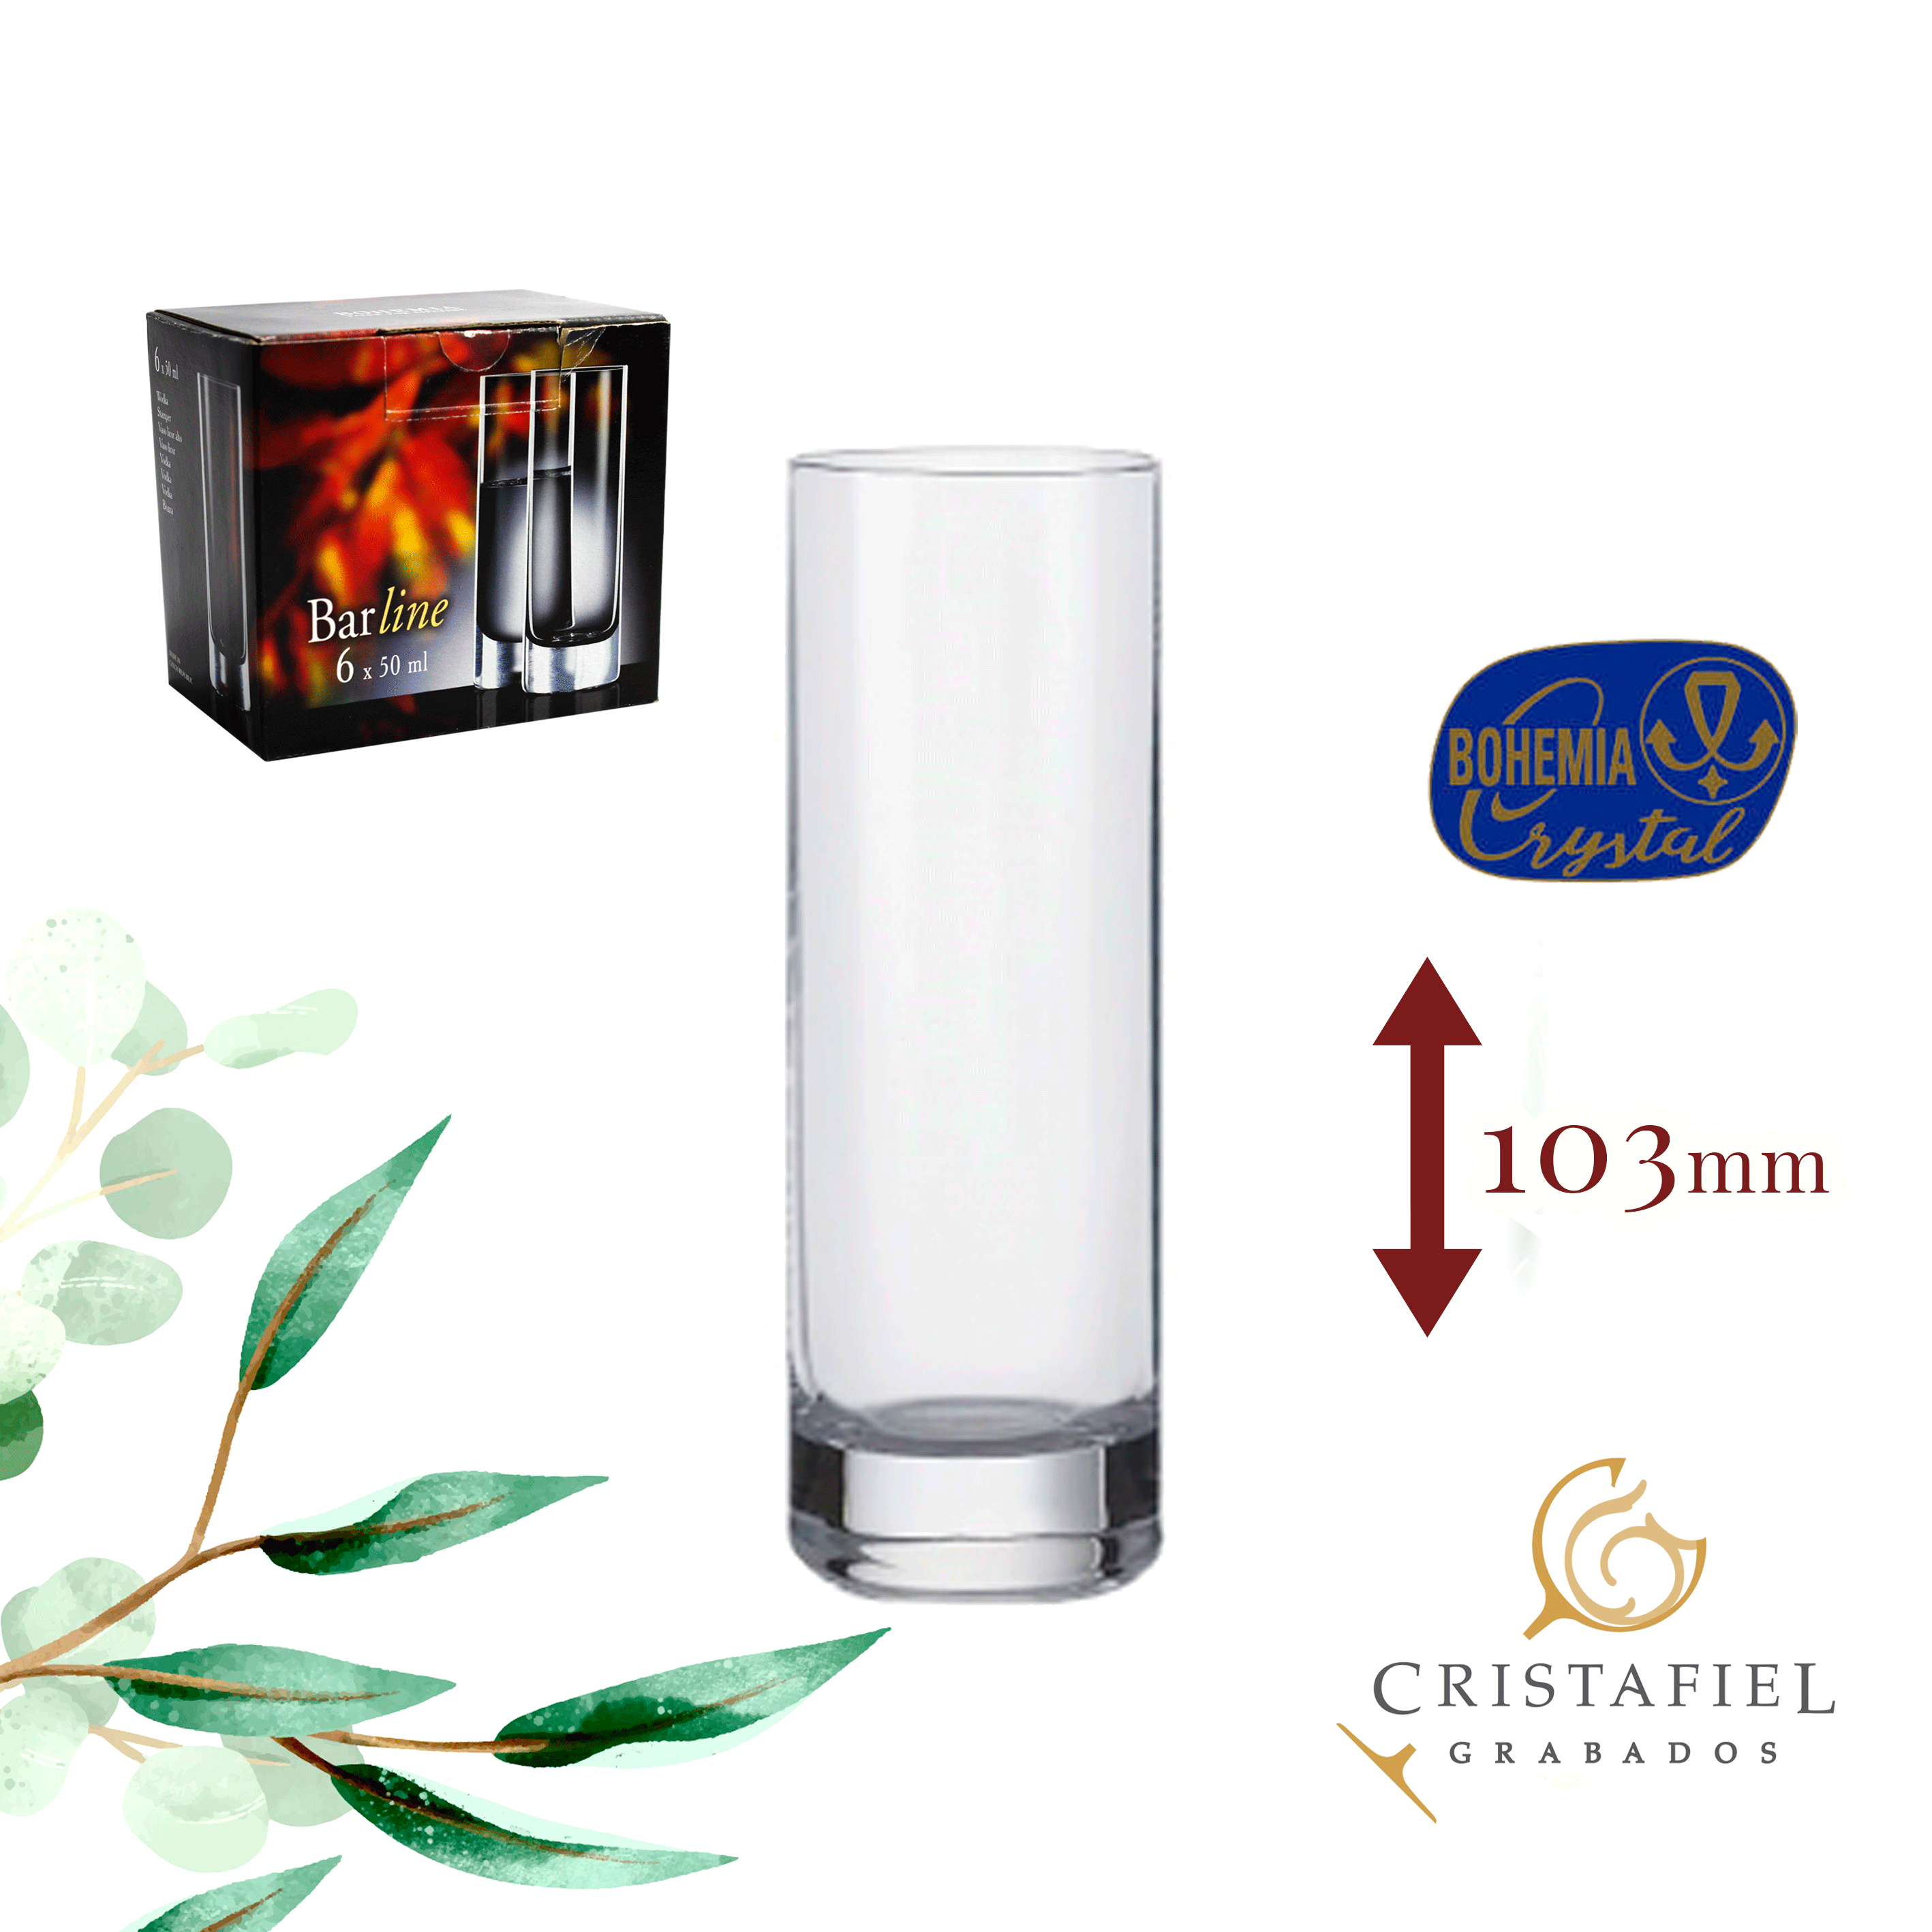 Vasos Barline 50ml Grabados Cristafiel Outlet